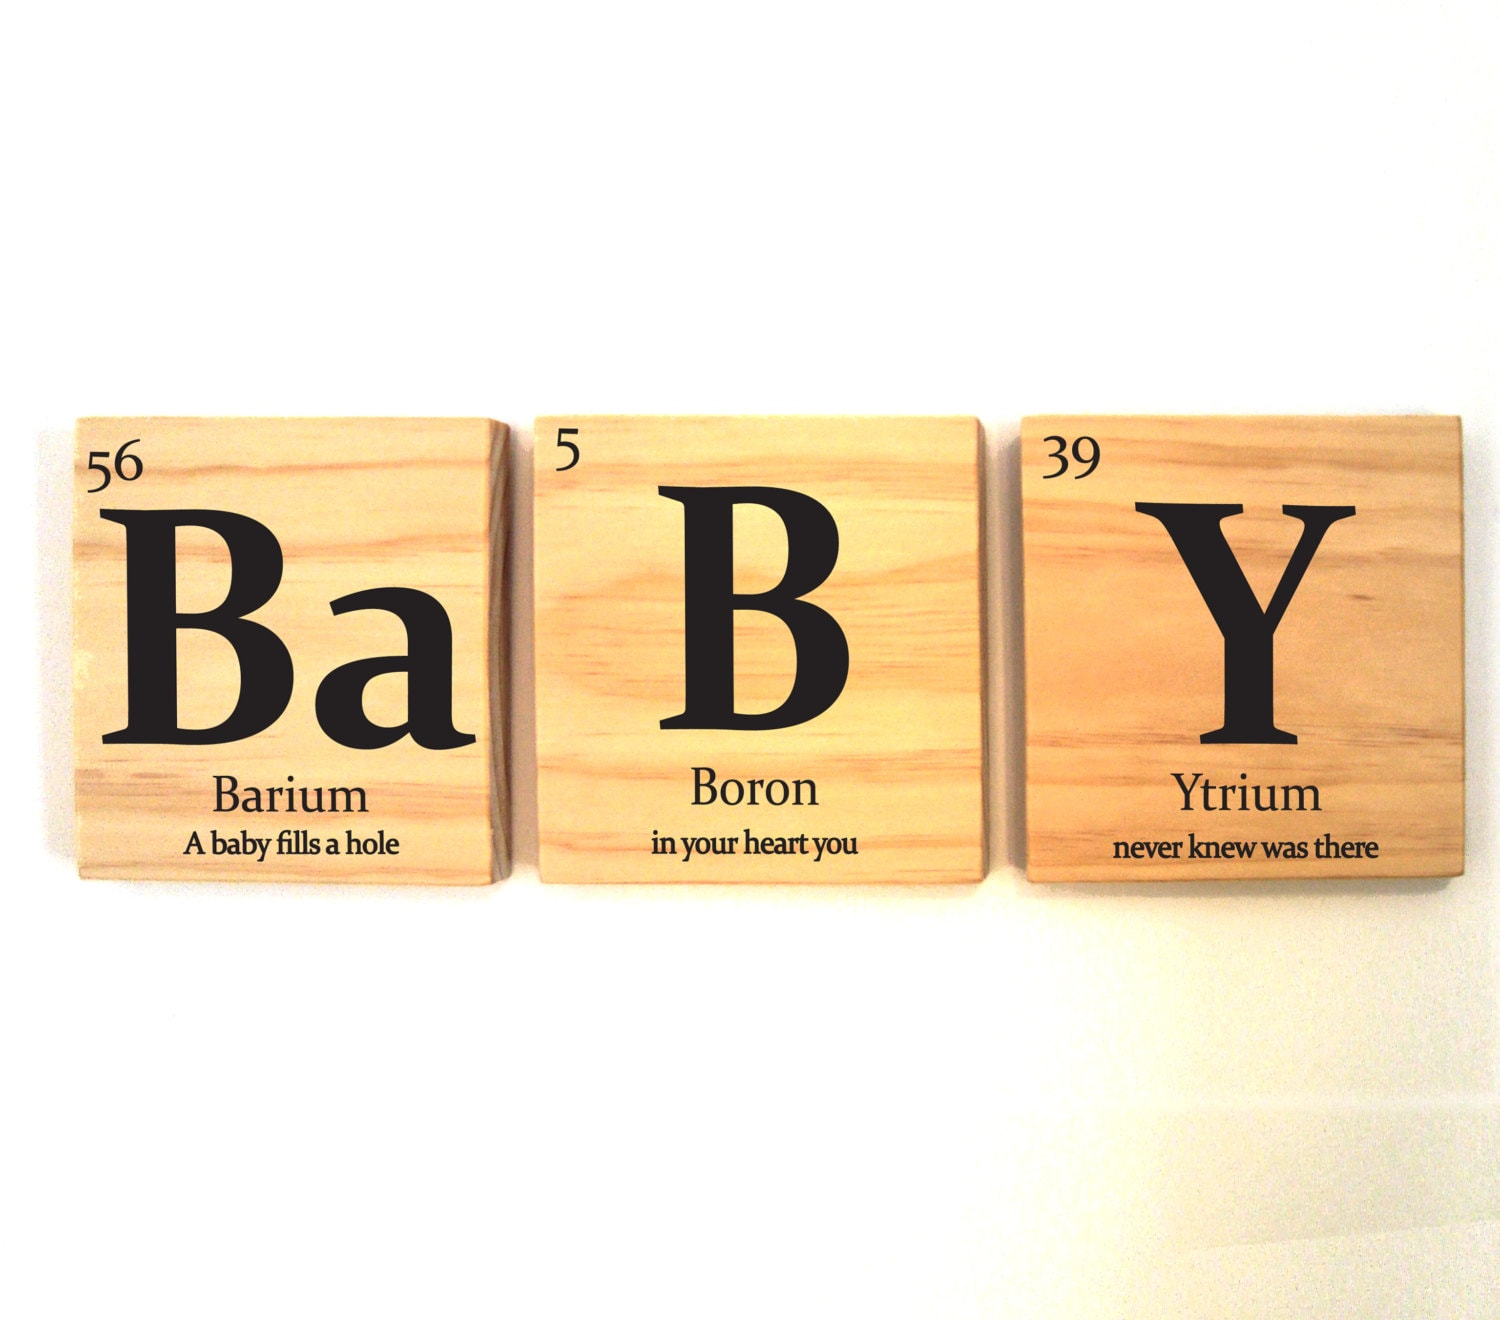 BaBY wooden tile wall art with quote- Periodic table of elements